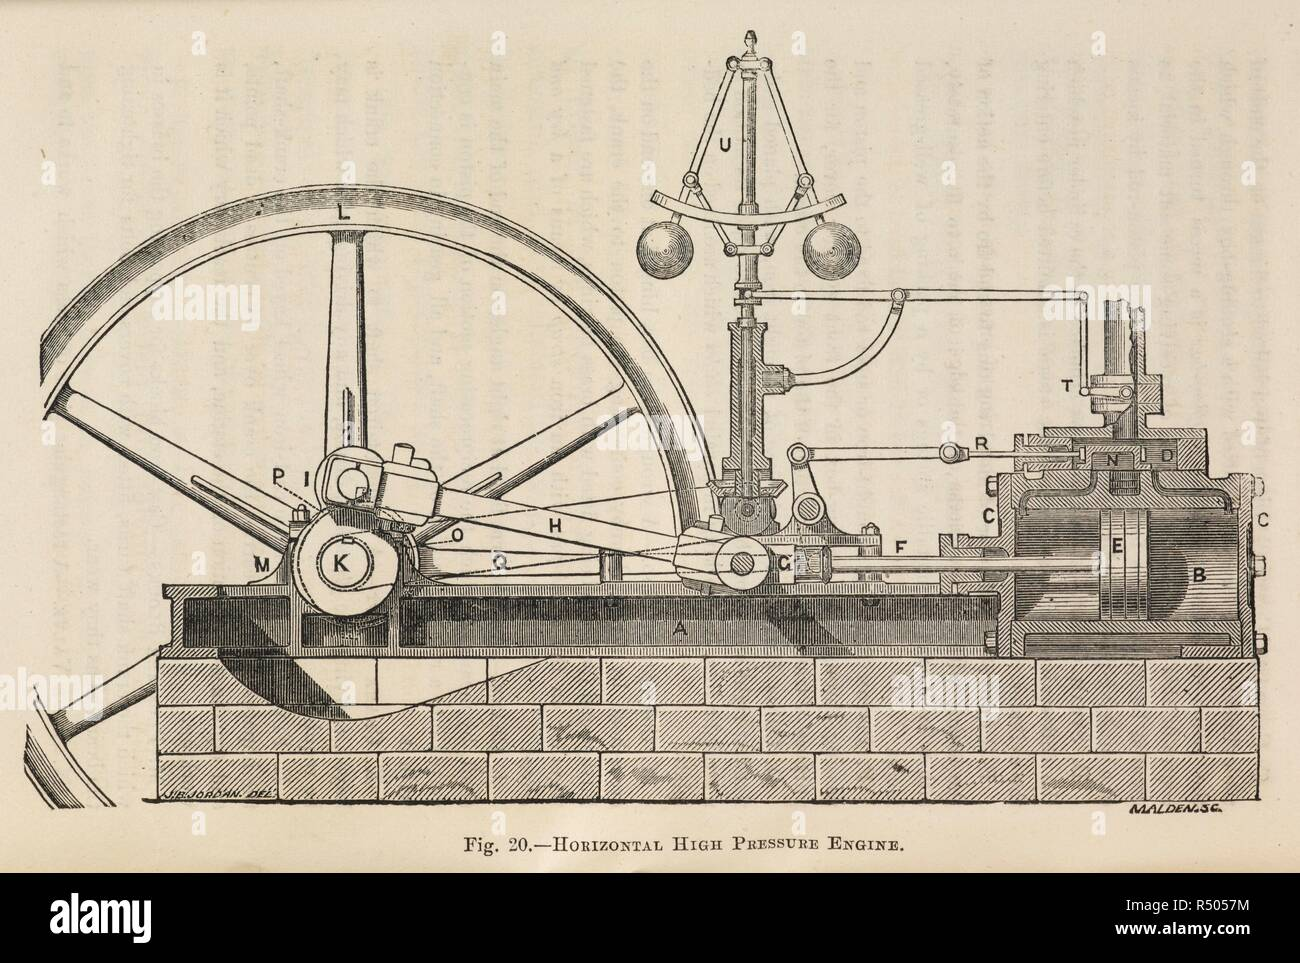 Diagram Of A Horizontal High Pressure Engine The Model Steam How To Buy Use And Construct It By Steady Stoker Etc